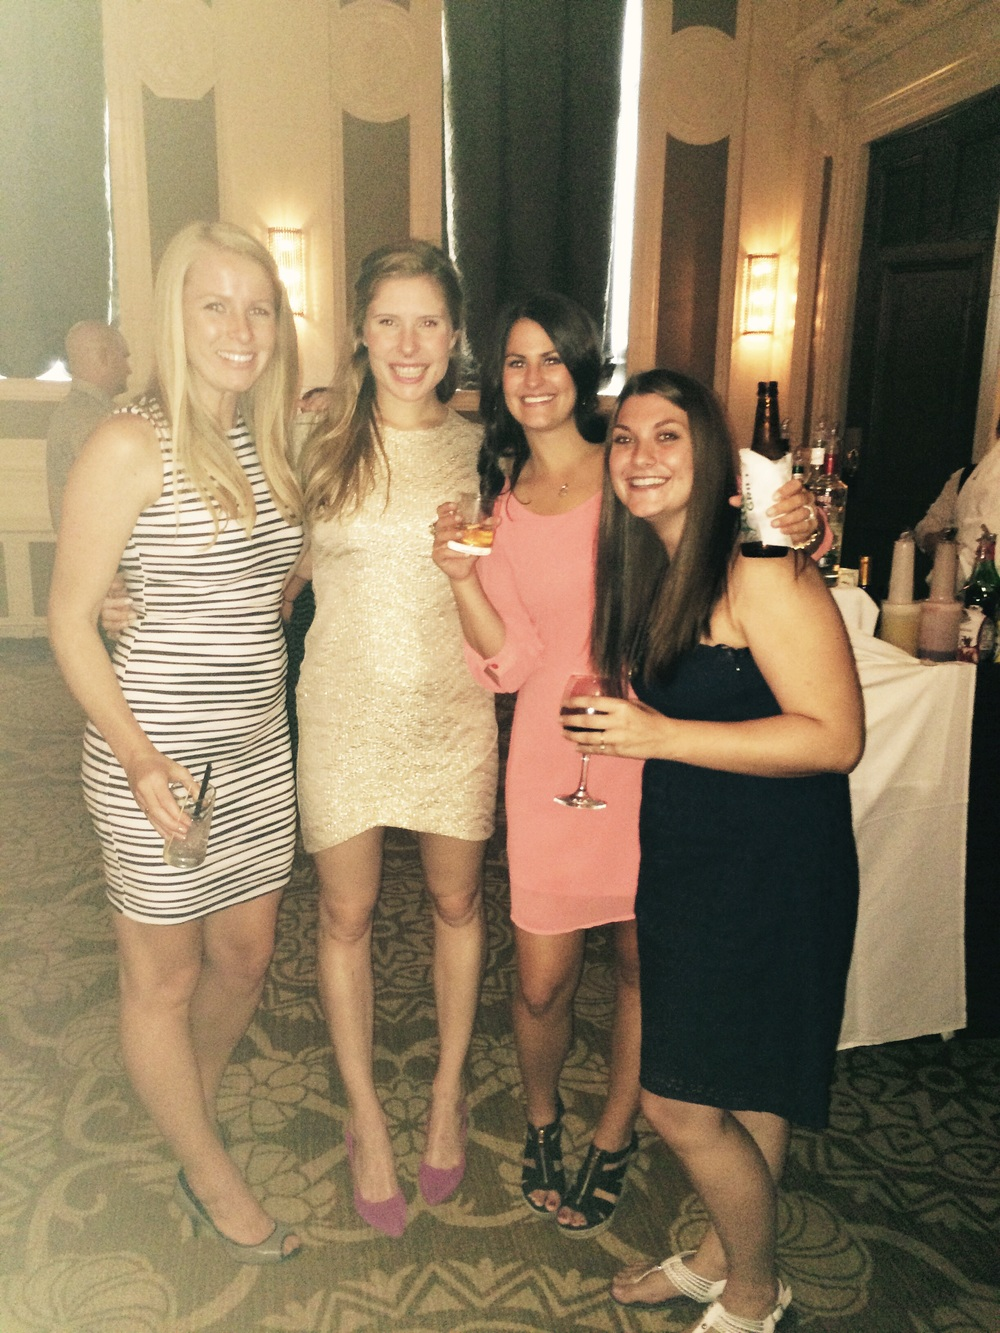 Me and my high school girls at Annica and Jordan's wedding!